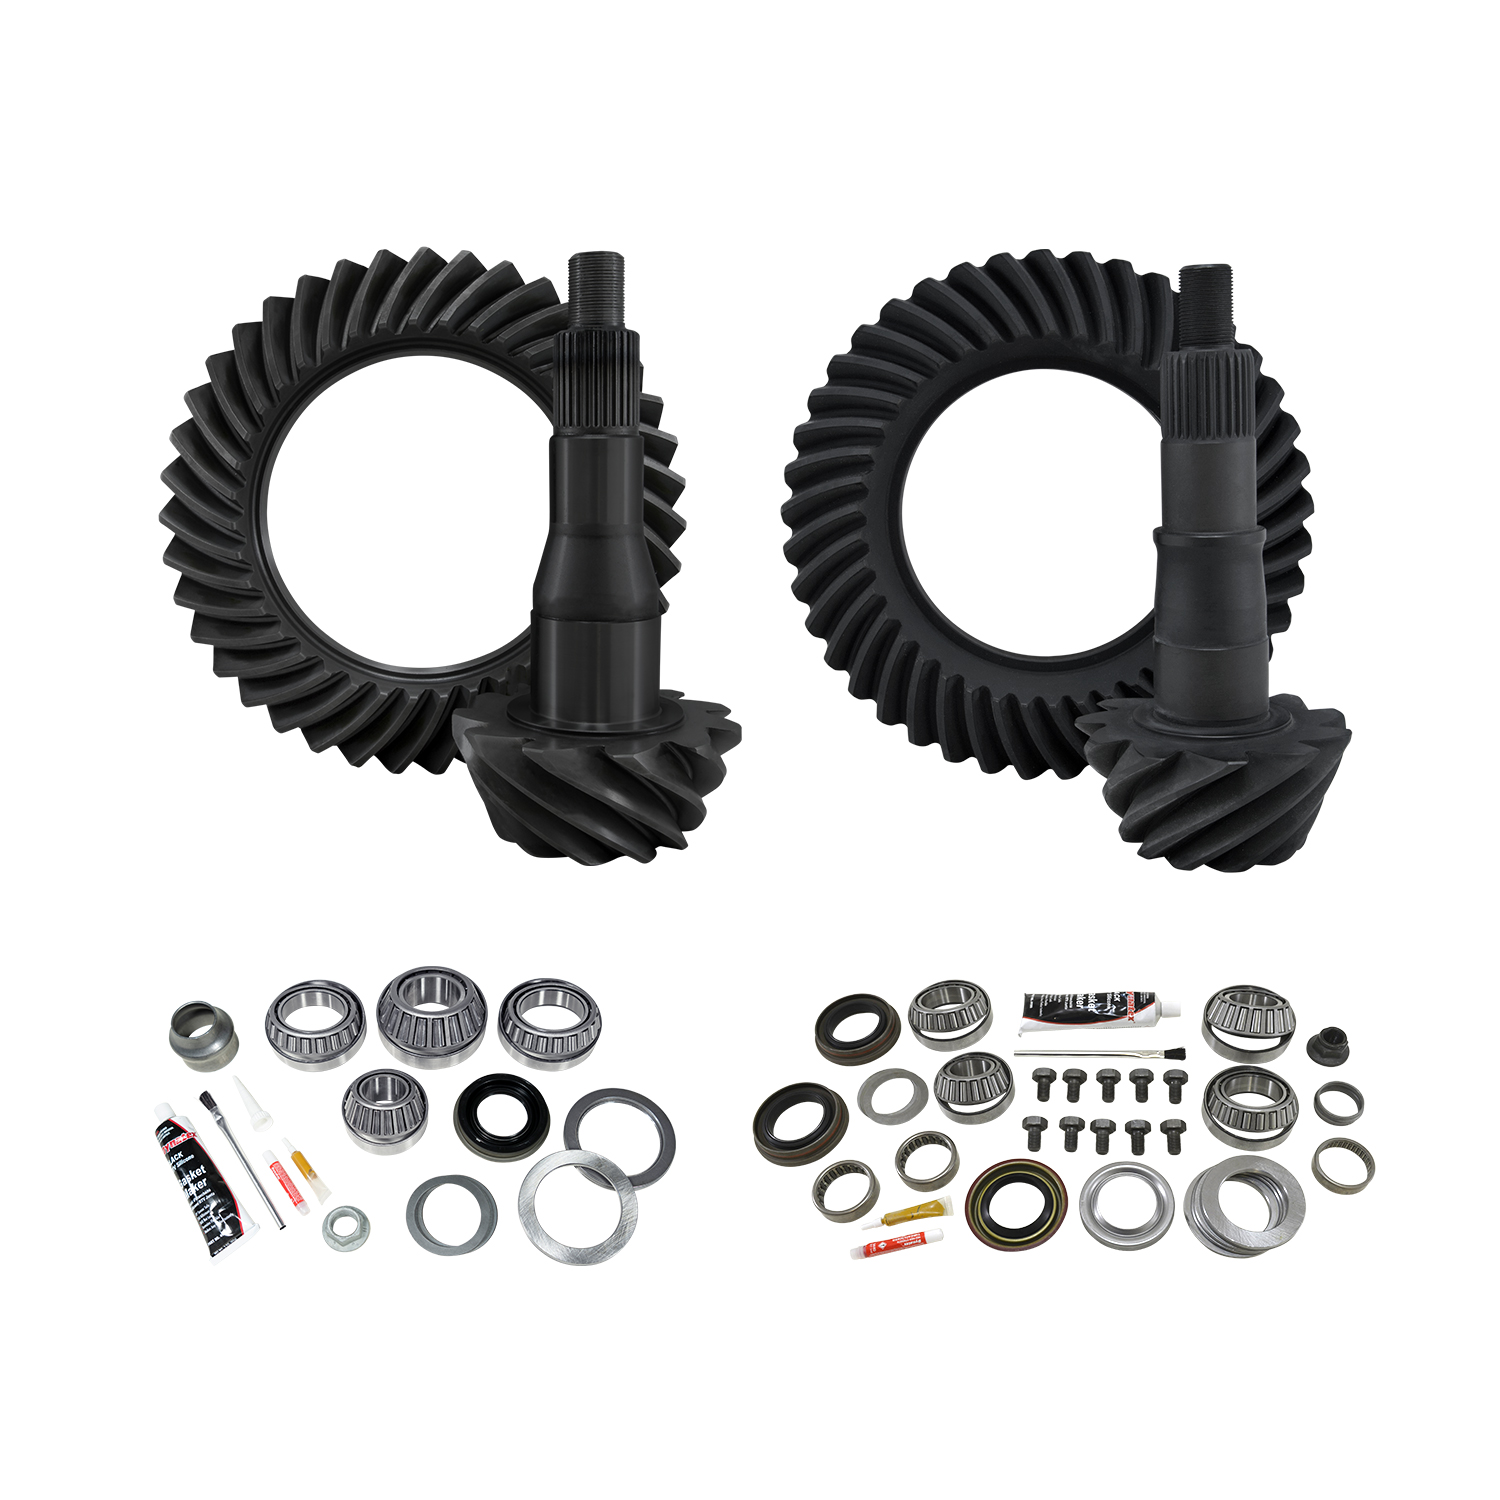 YGK106 - Yukon Complete Gear and Kit Pakage for Various Ford F150 with 9.75